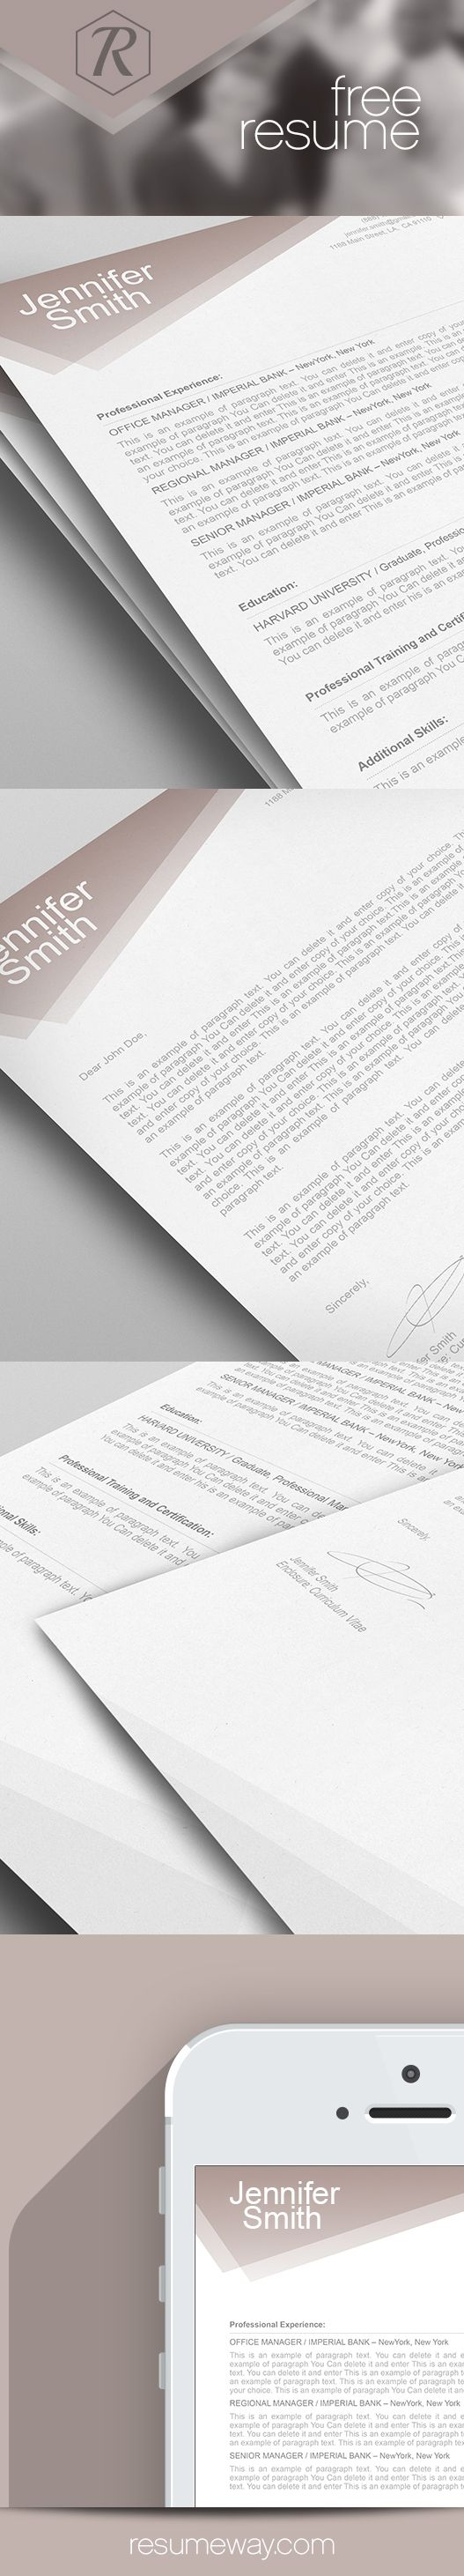 Best free fillable forms application letter format in urdu application letter format in urdu filetype doc download all free our forms templates in ms word ms office google docs and other formats spiritdancerdesigns Image collections